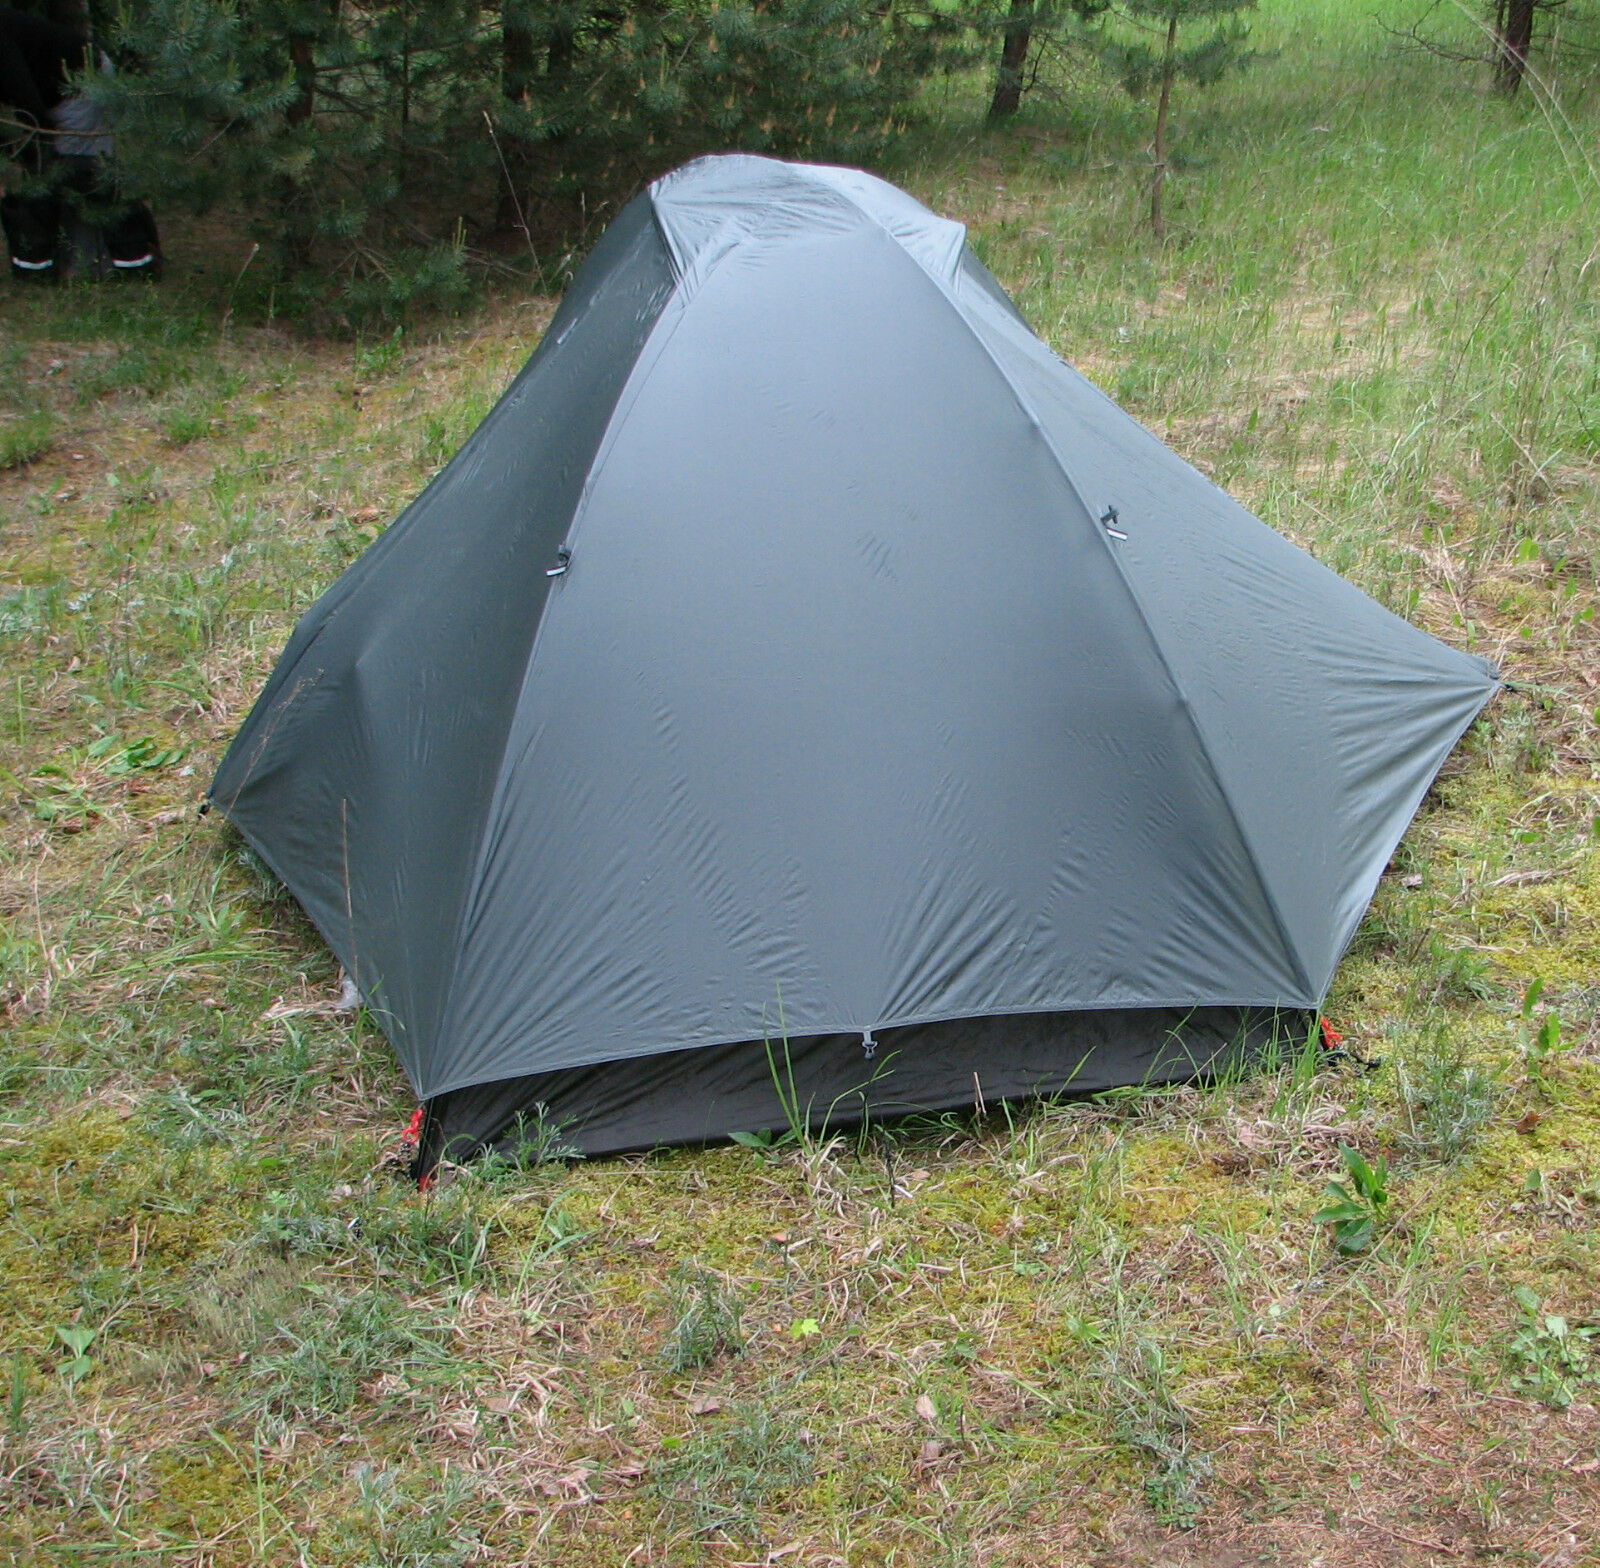 ULTRALIGHT ULTRALIGHT ULTRALIGHT lightweight Big Sky Evolution 2P tent cuben fabric floor tent DAC pol 3dcd25